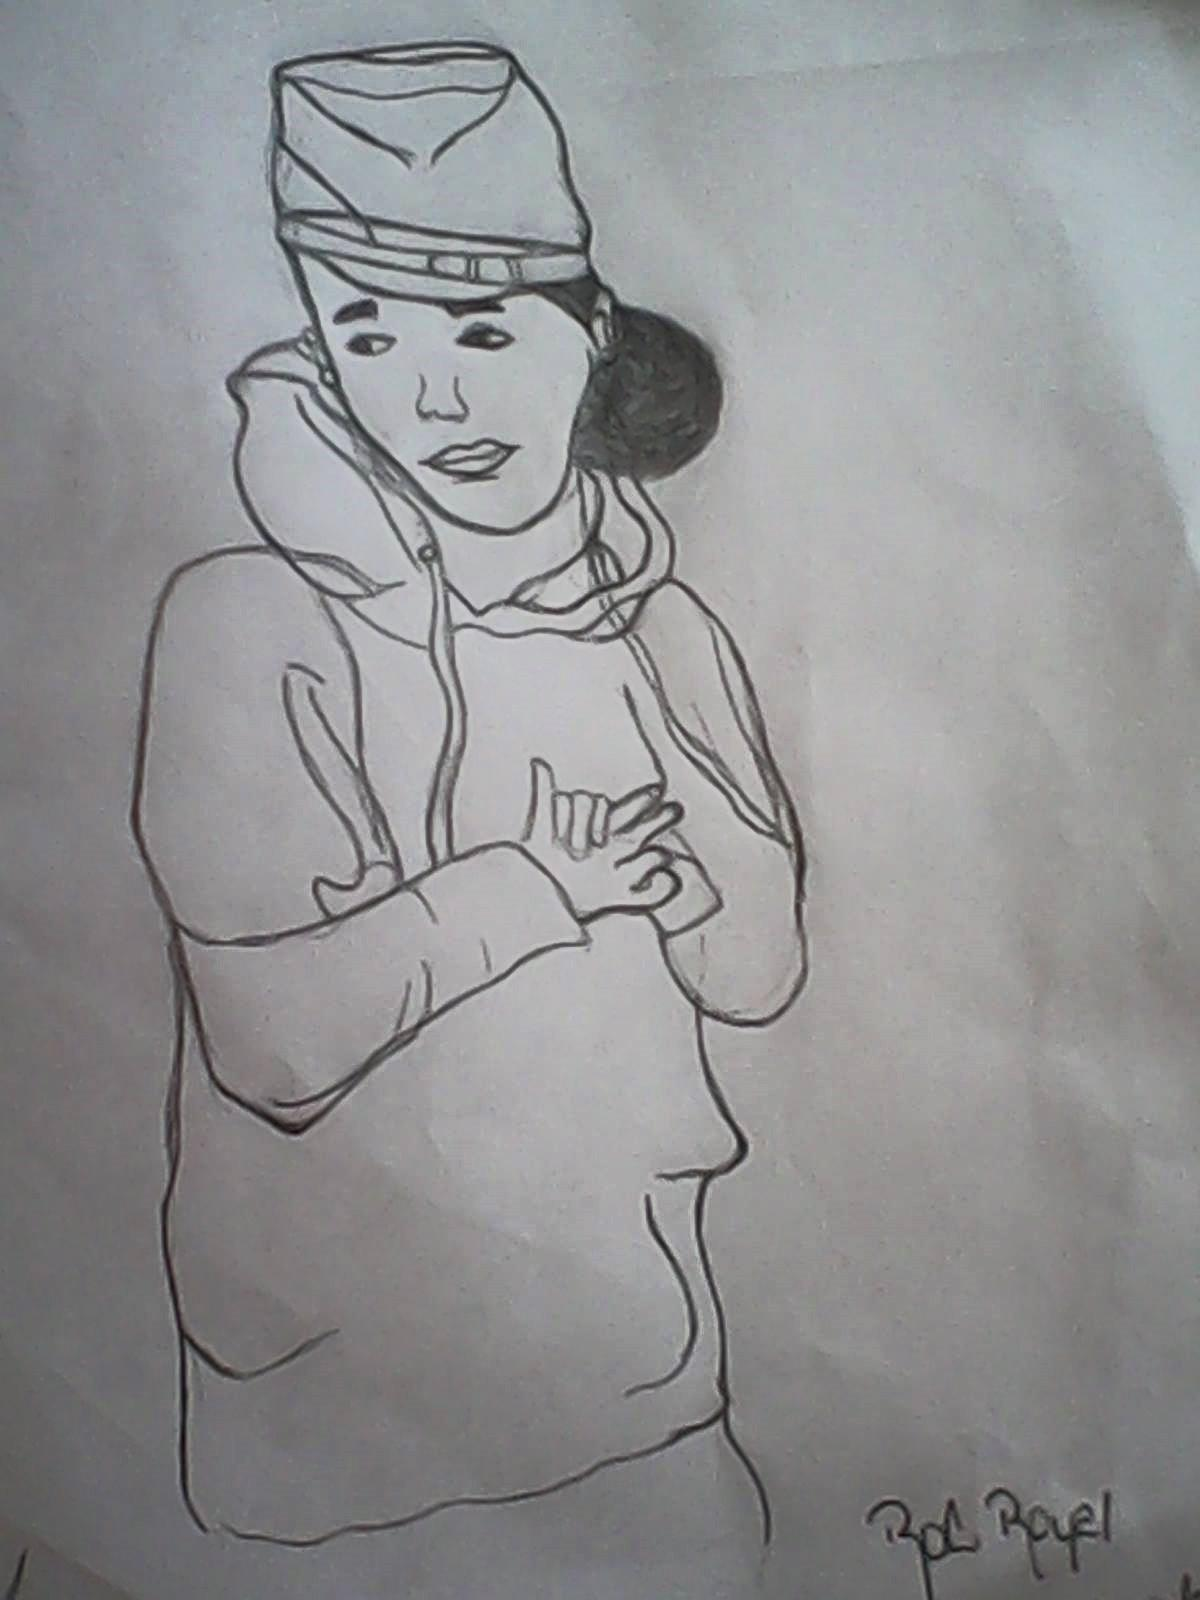 Which DG member drew this pic of Roc Royal?